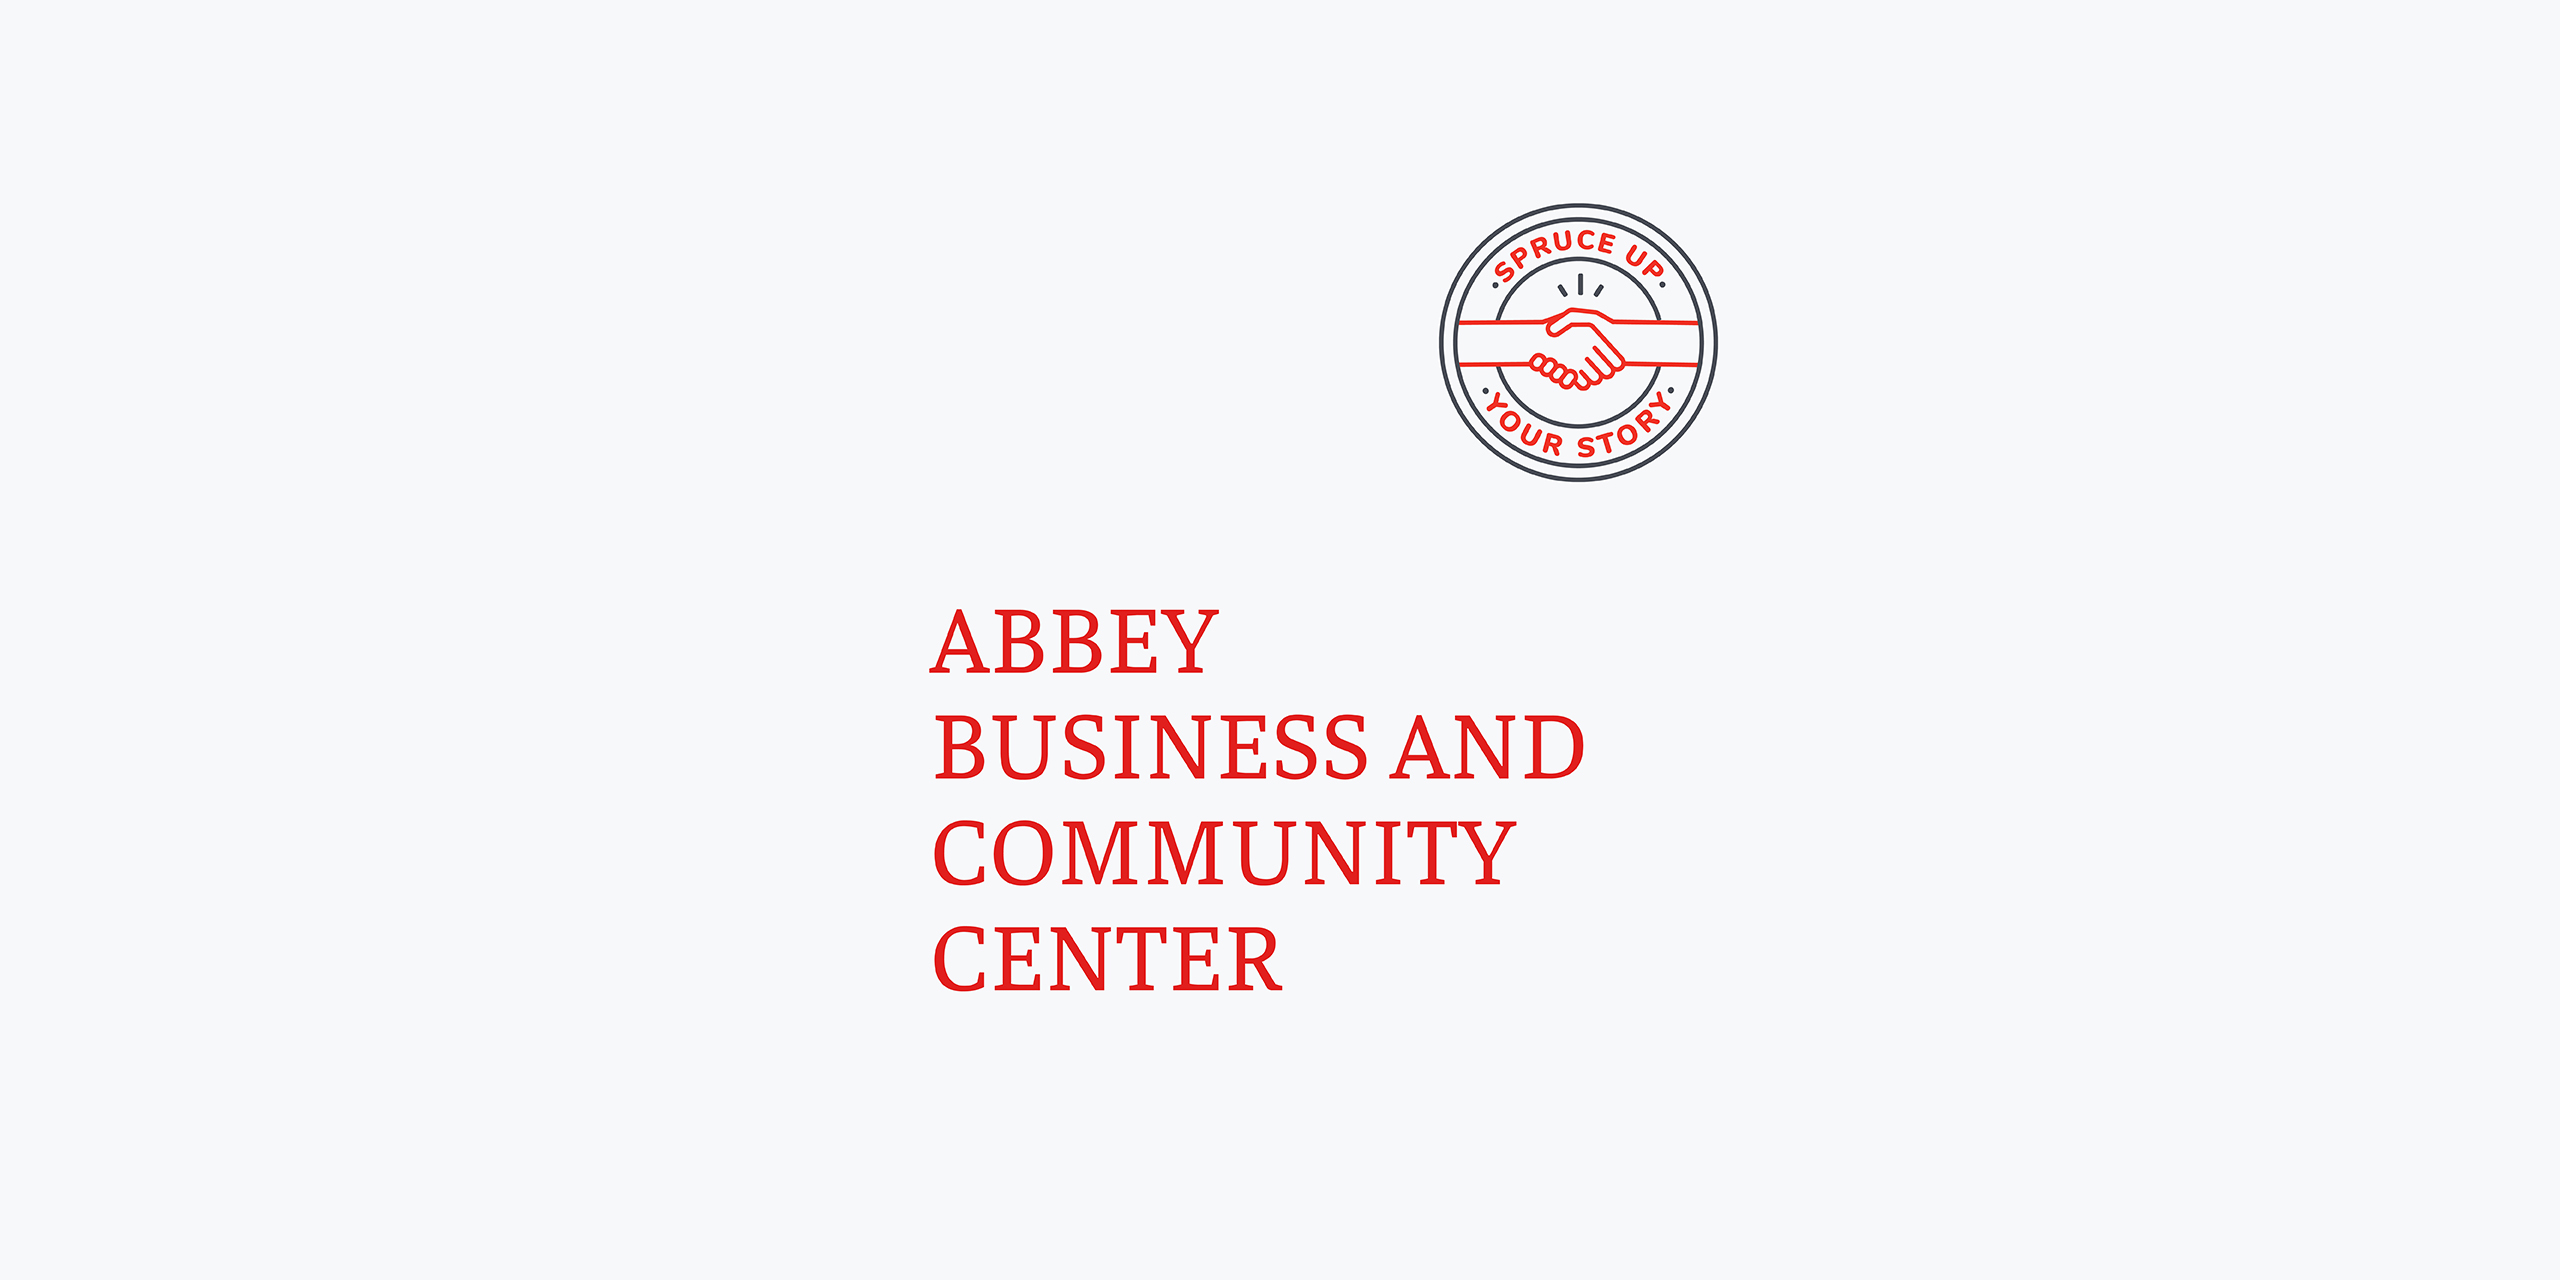 Abbey Business and Community Center